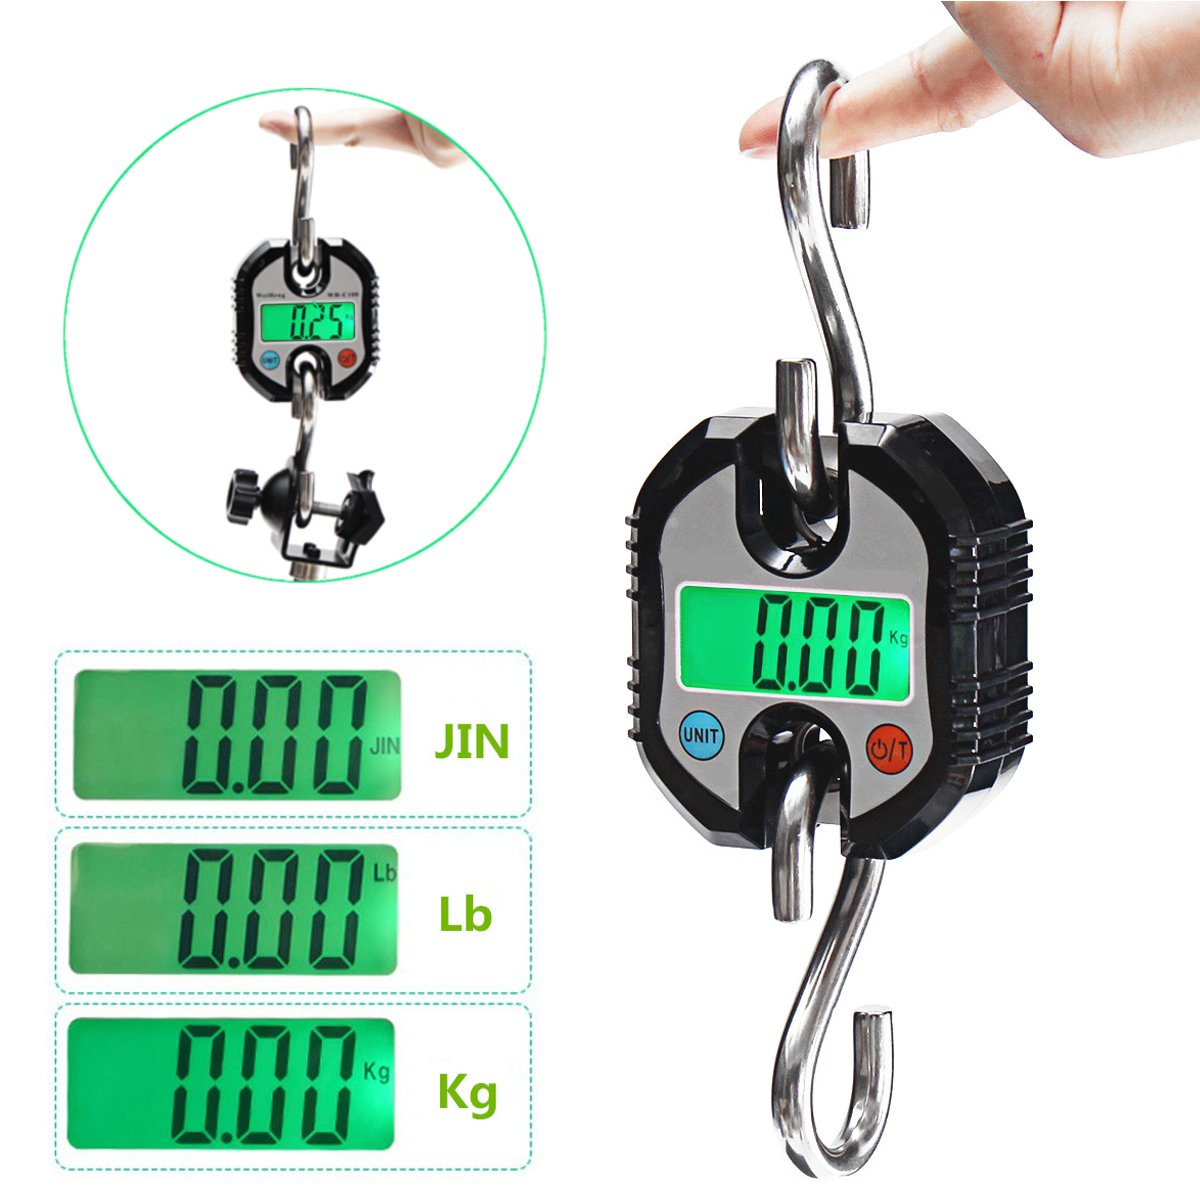 Scale Digital LED Backlight 150Kg/330Lb Hanging Scale Crane Heavy Duty Postal Scale Industrial Shipping With 2 Hooks